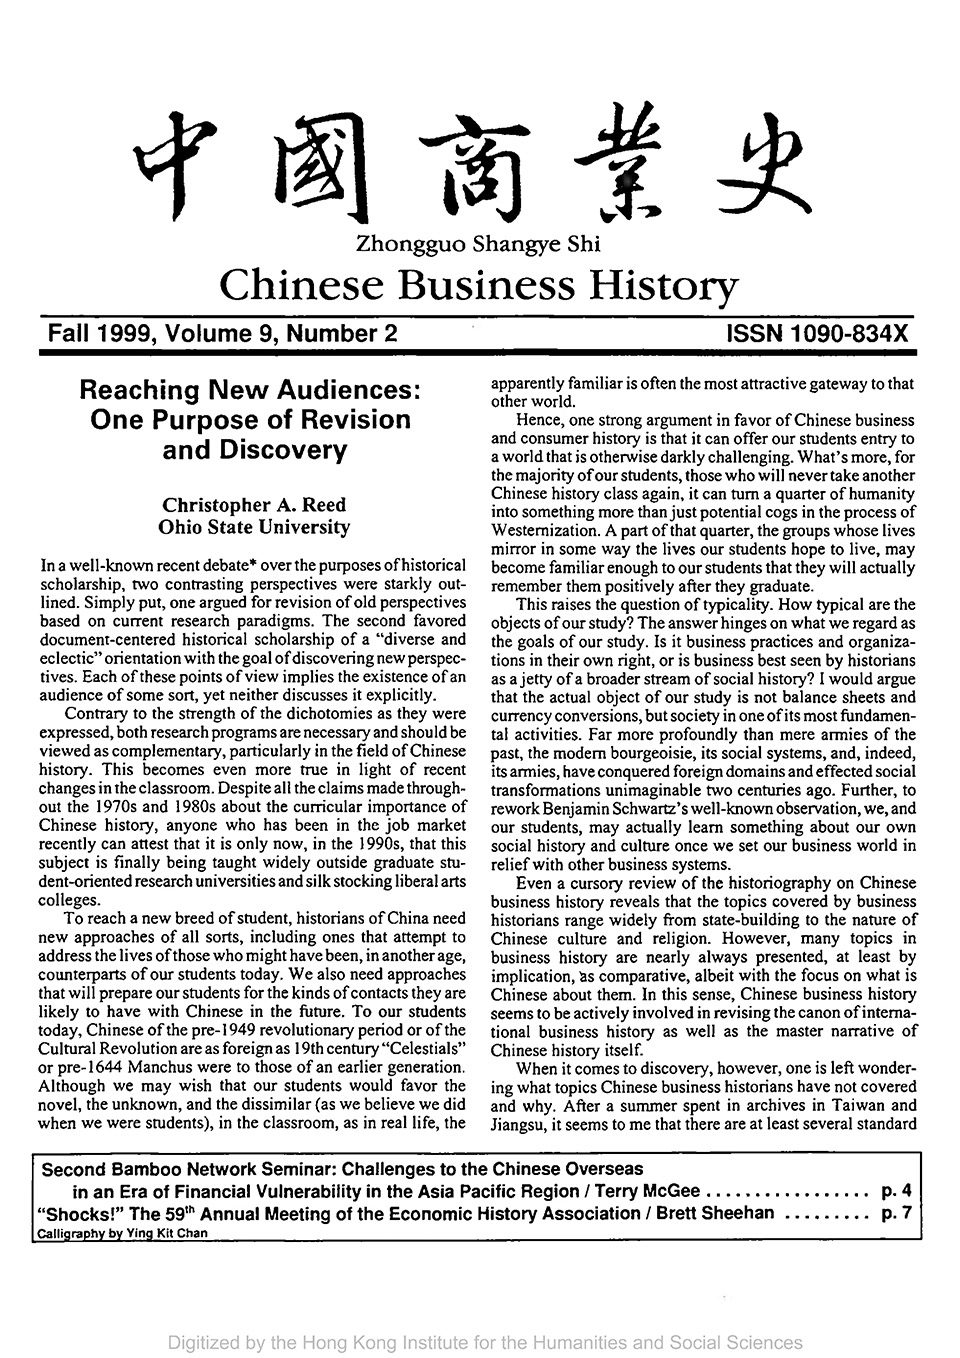 Cover of Chinese Business History Journal Volume 9, Number 2